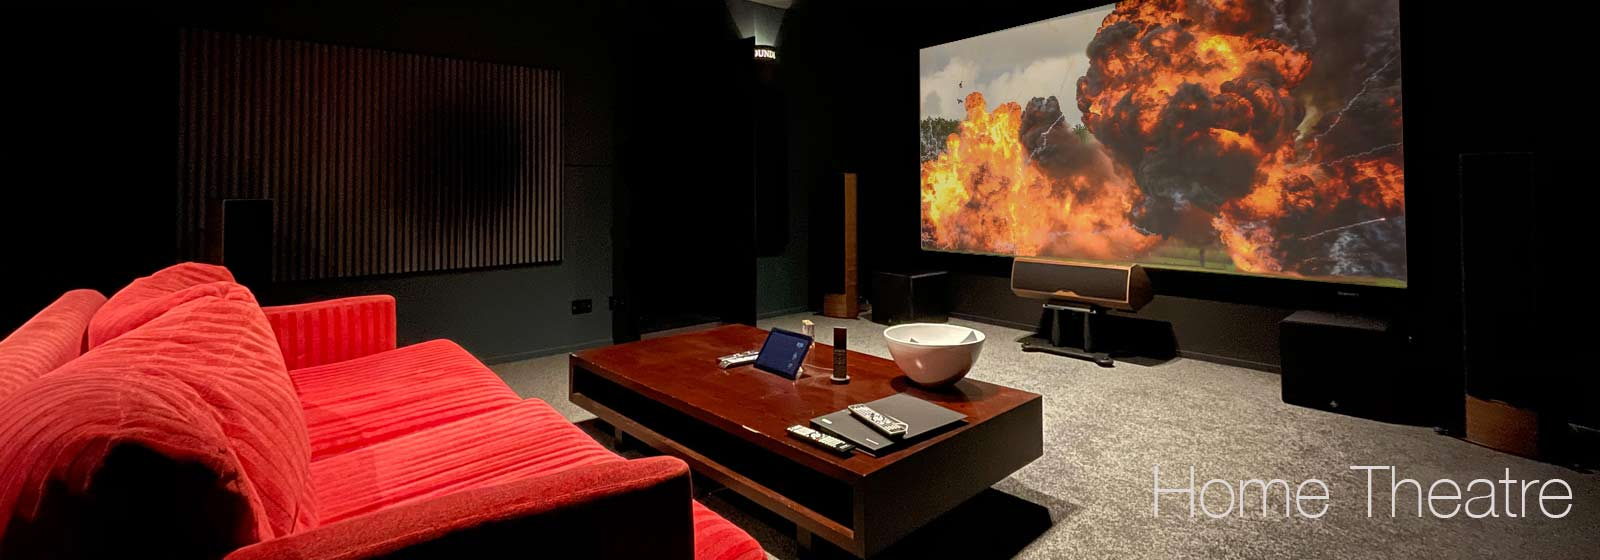 Soundline Home theatre and home cinema